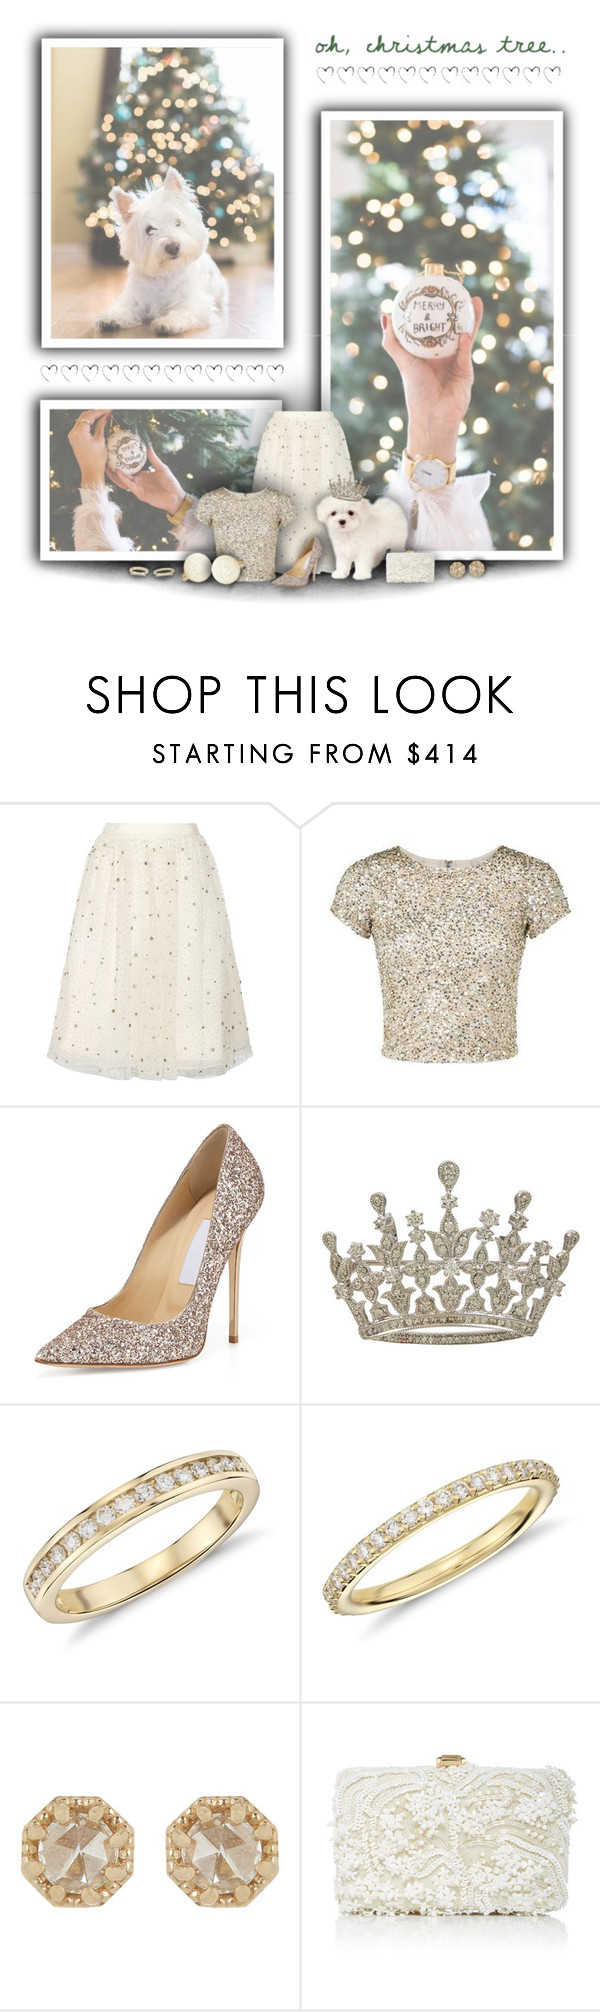 """Oh, Christmas Tree!"" by rachelegance ❤ liked on Polyvore featuring Alice + Olivia, Jimmy Choo, Blue Nile, Grace Lee Designs, Elie Saab, holidaystyle and HolidayParty"